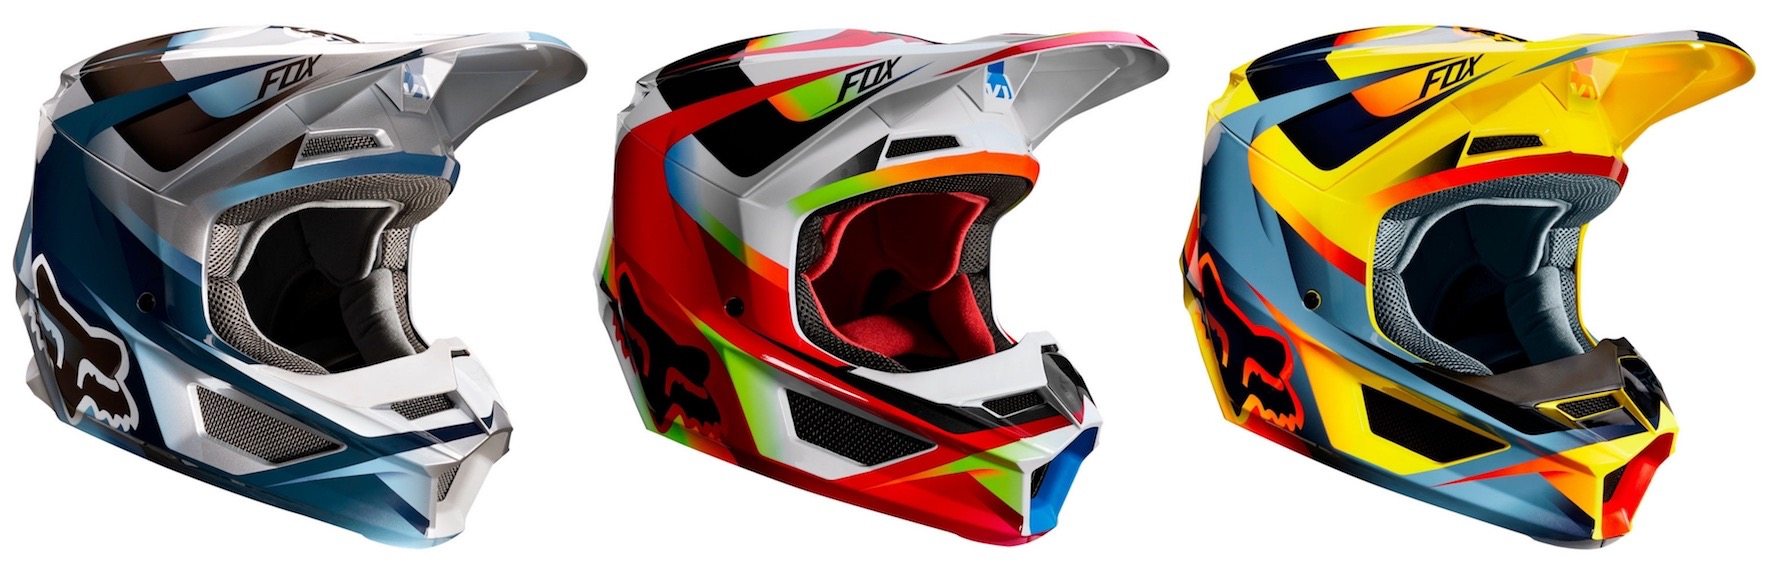 The Fox V1 Motif helmet available in the above color-ways